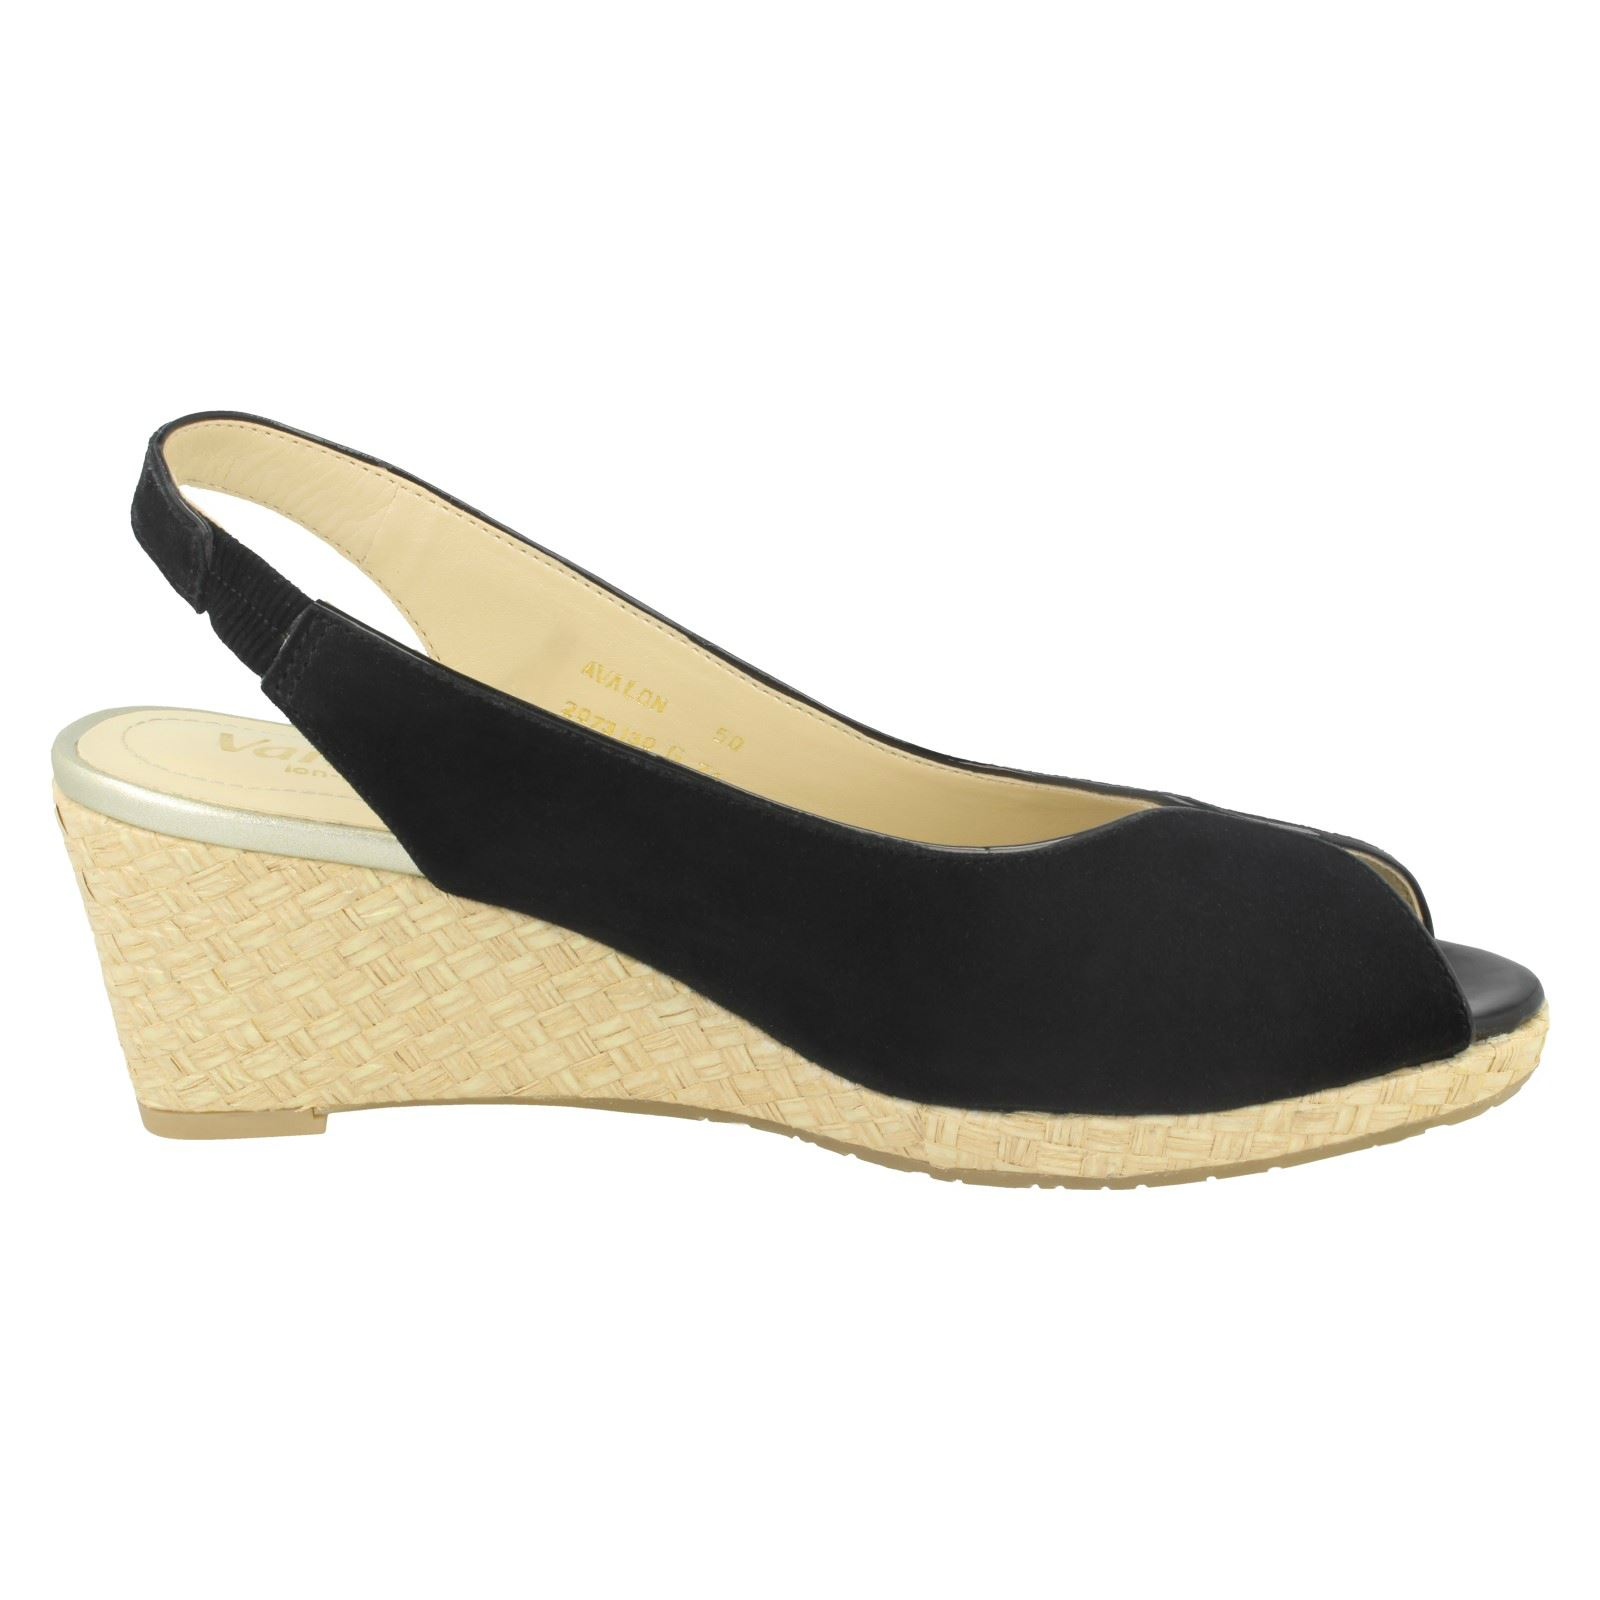 Ladies-Van-Dal-Leather-Wedge-Sandal-With-Woven-Detail-Avalon thumbnail 7